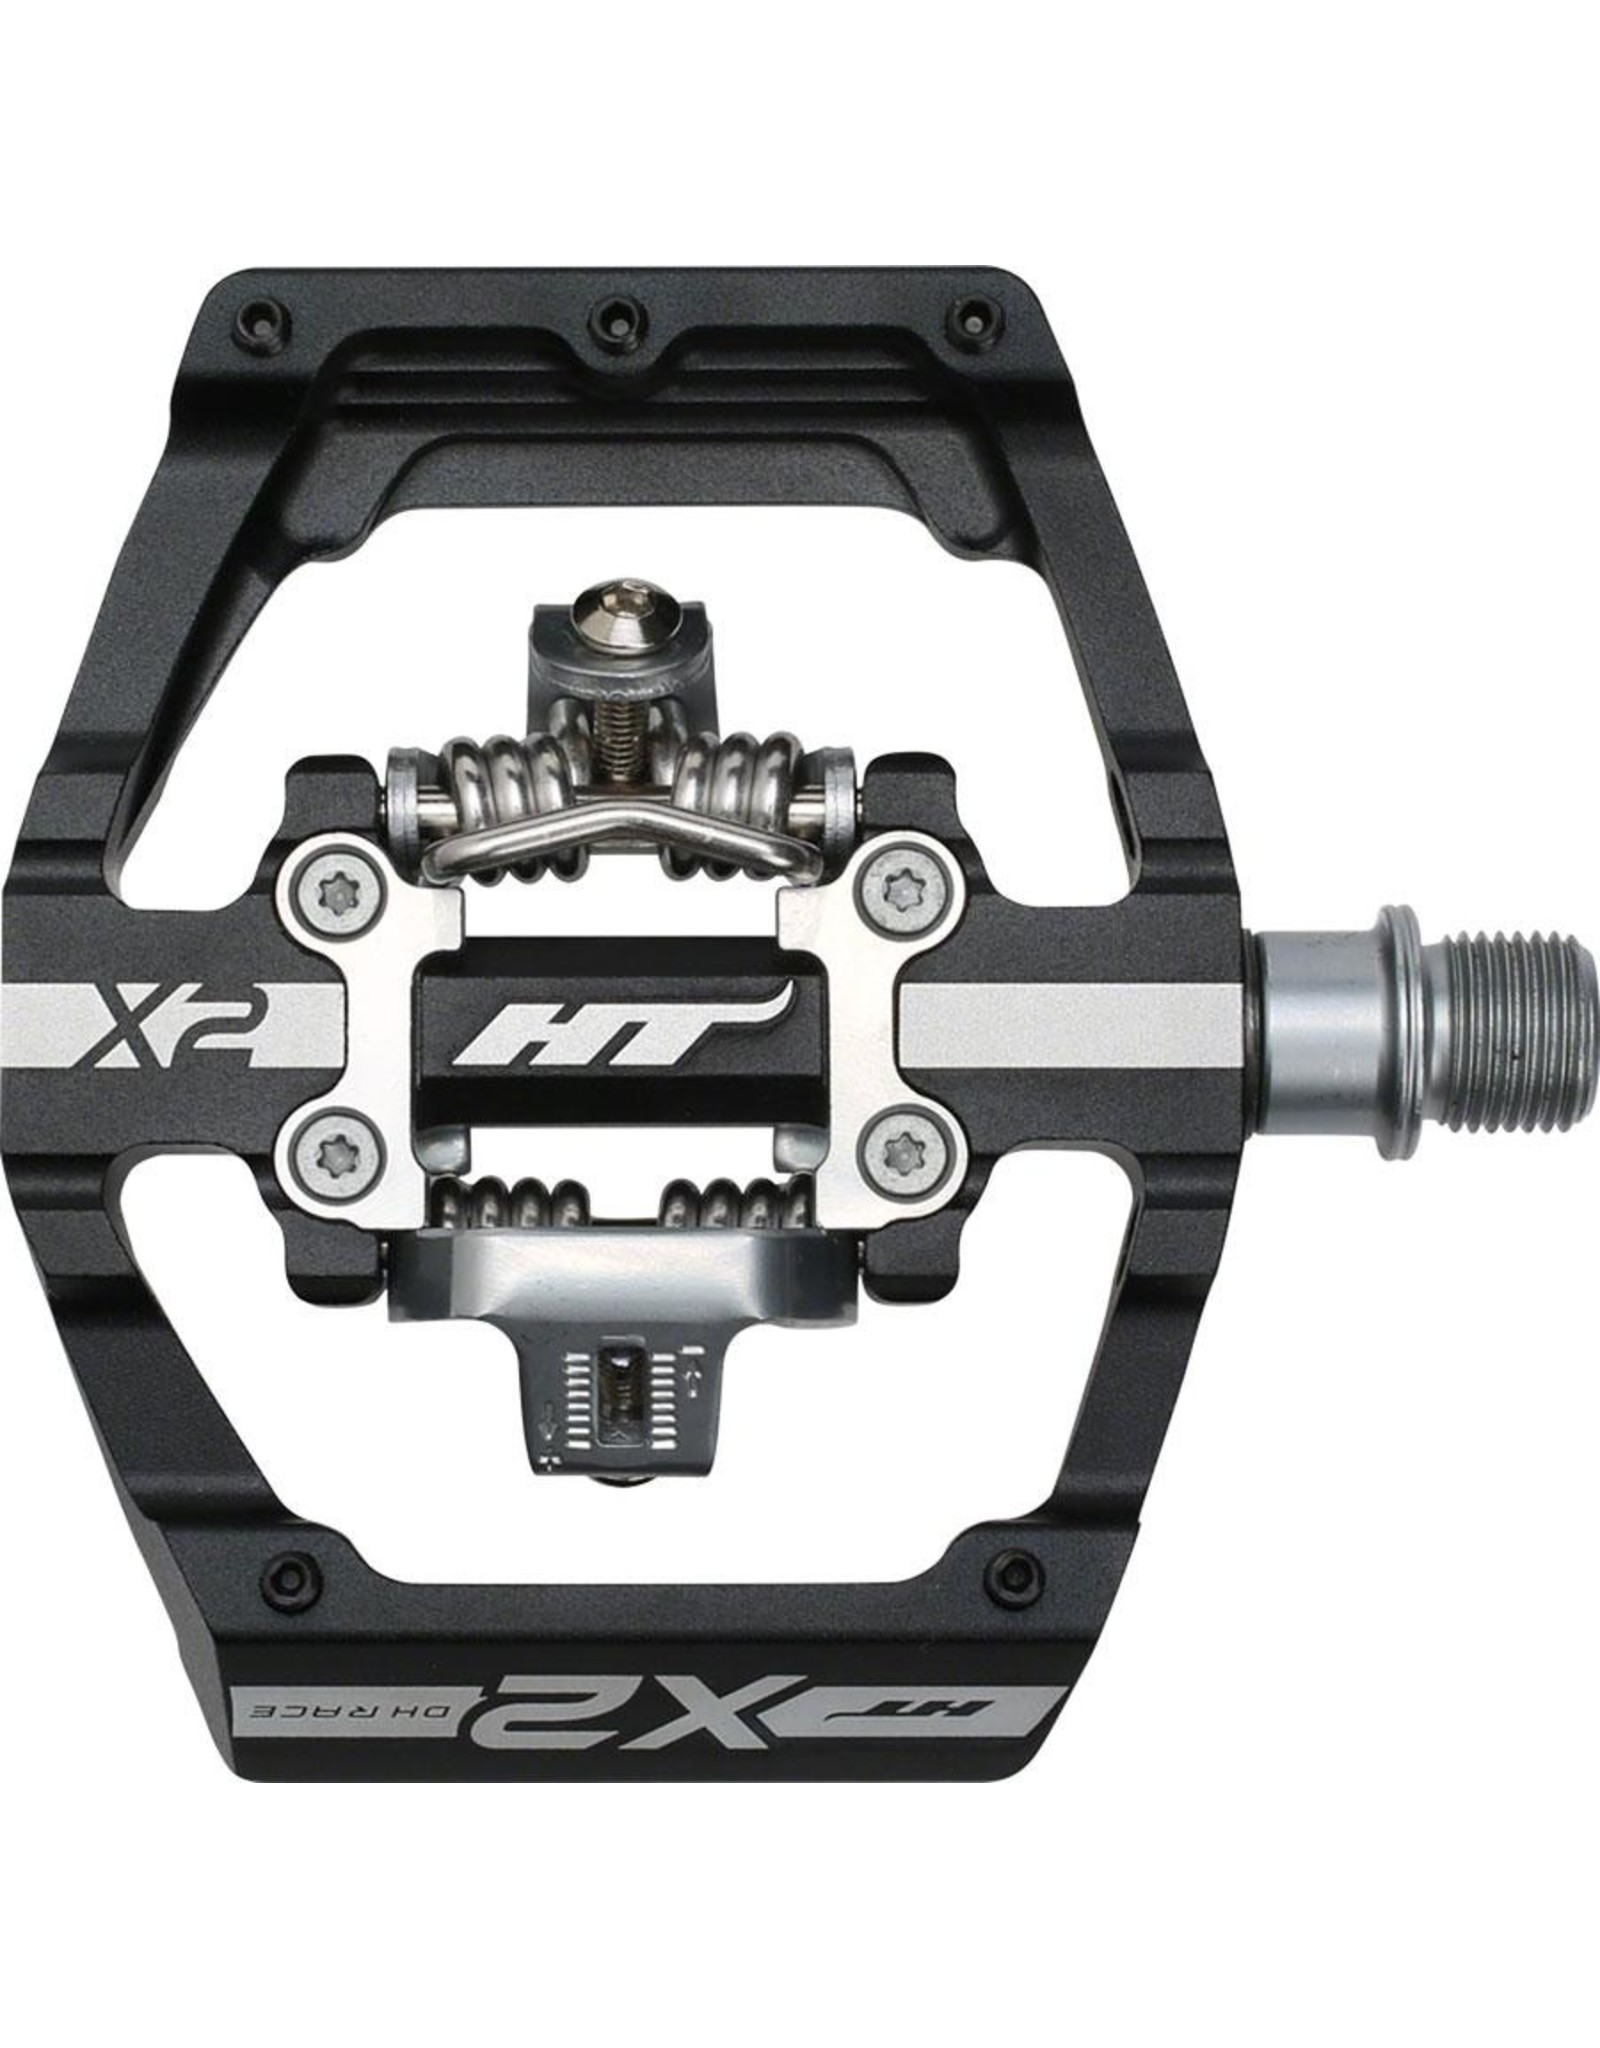 """HT Components HT X2 DH Race Pedals - Dual Sided Clipless with Platform, Aluminum, 9/16"""", Black"""